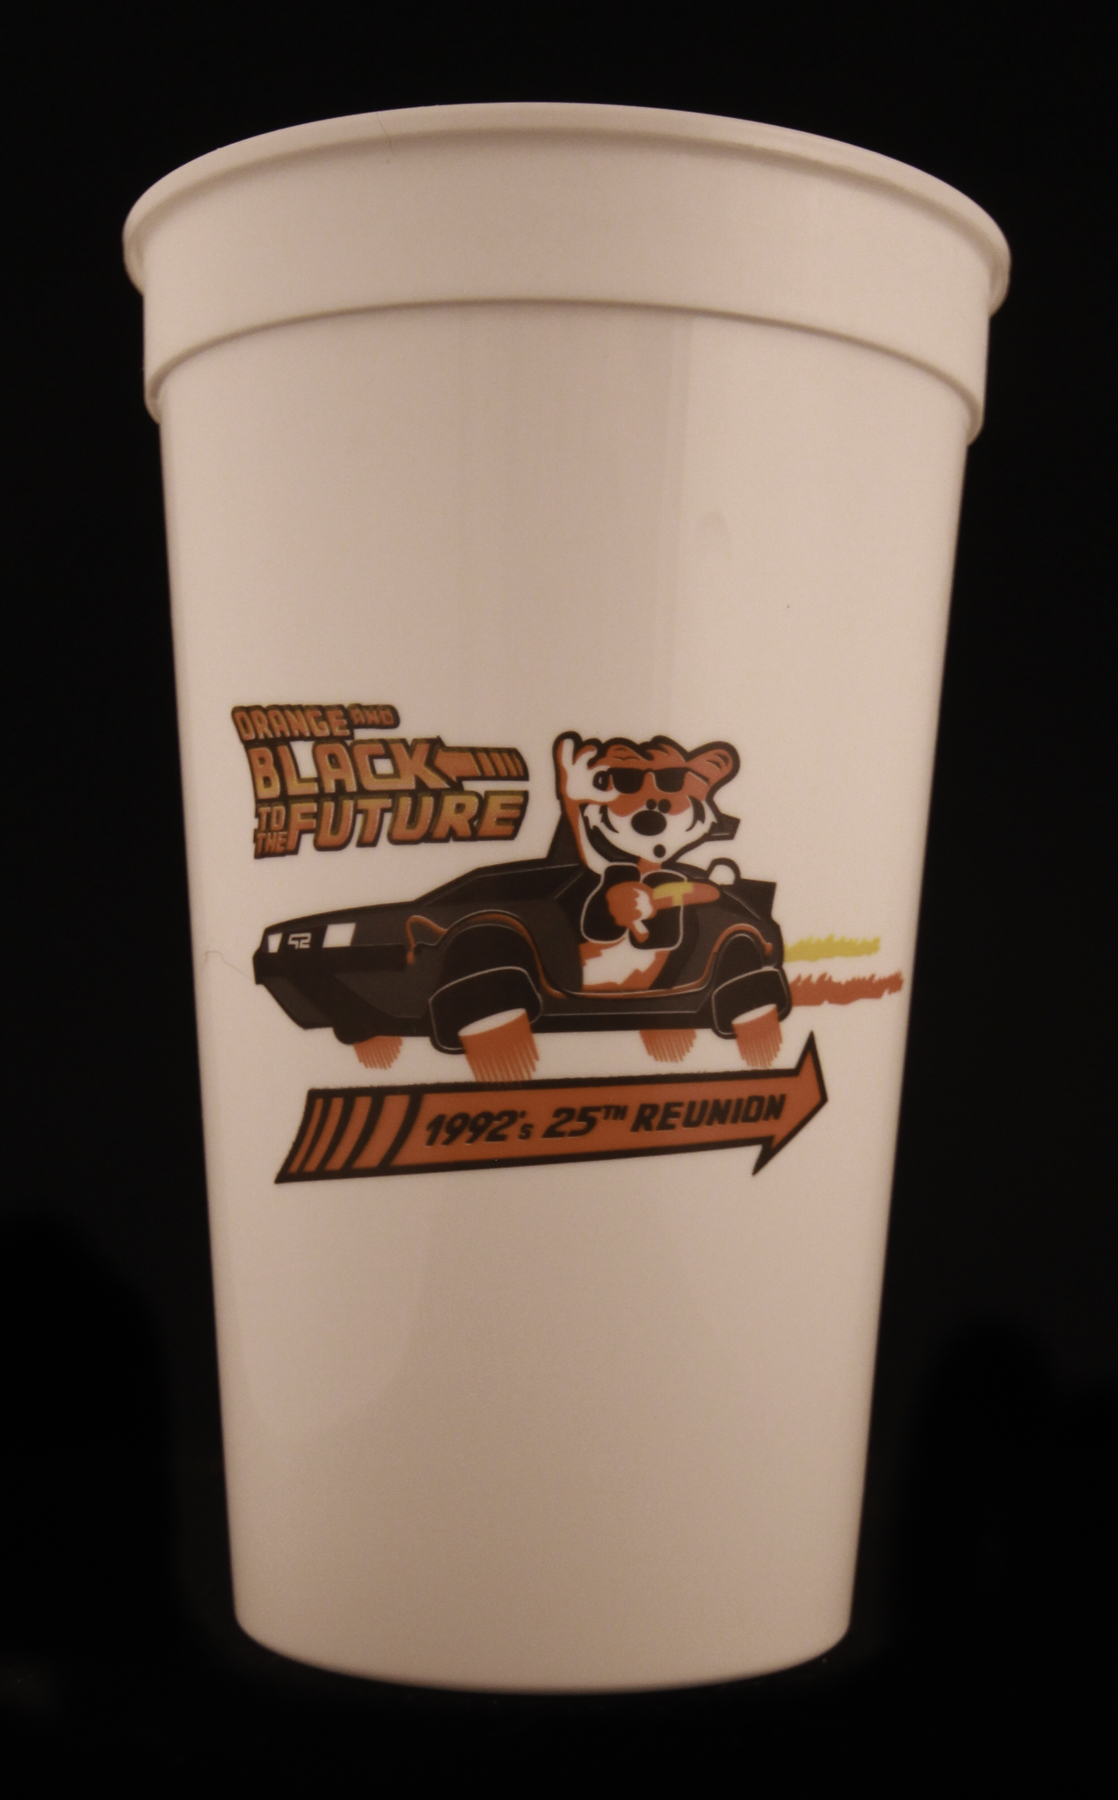 1992 Beer Cup 25th Reunion